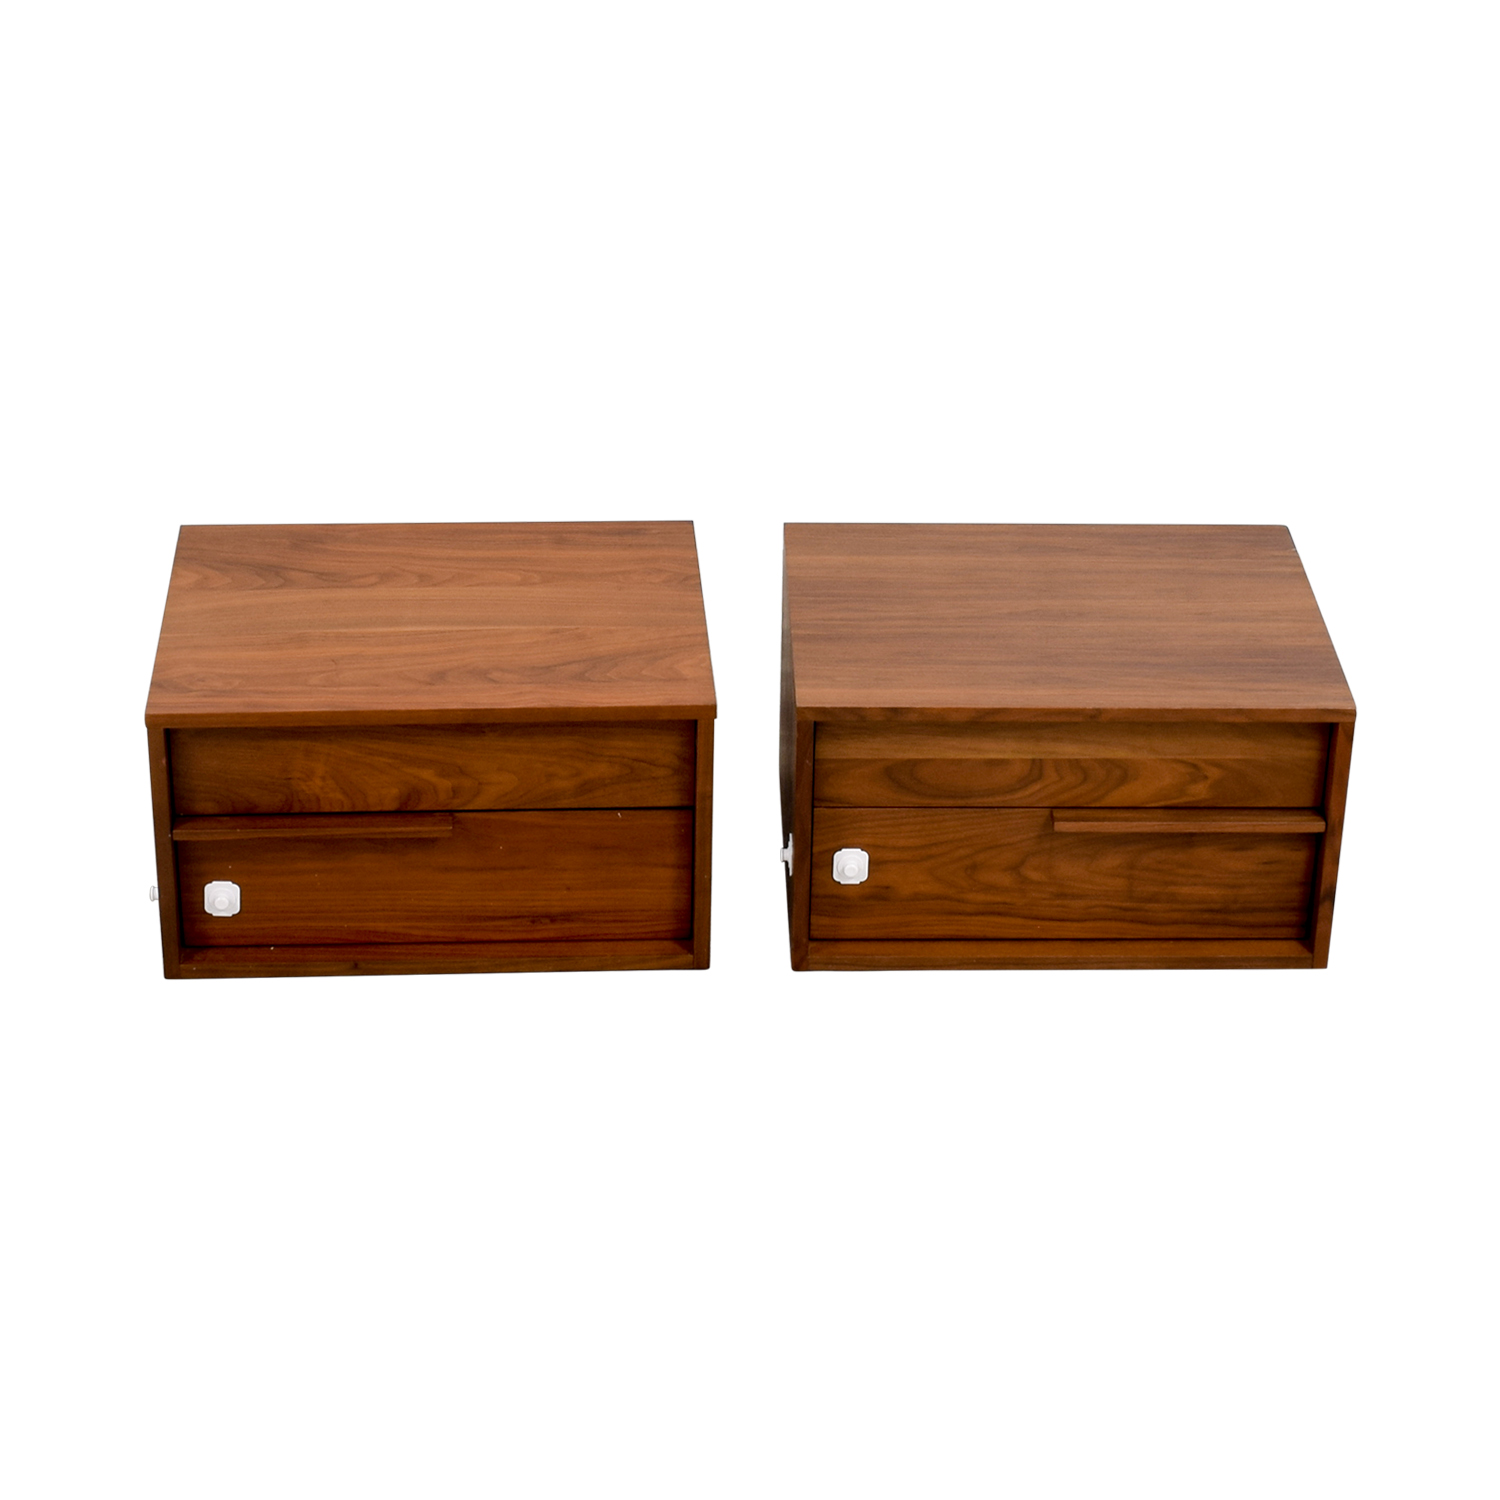 Modloft Modloft Jane Two-Drawer Nightstands for sale